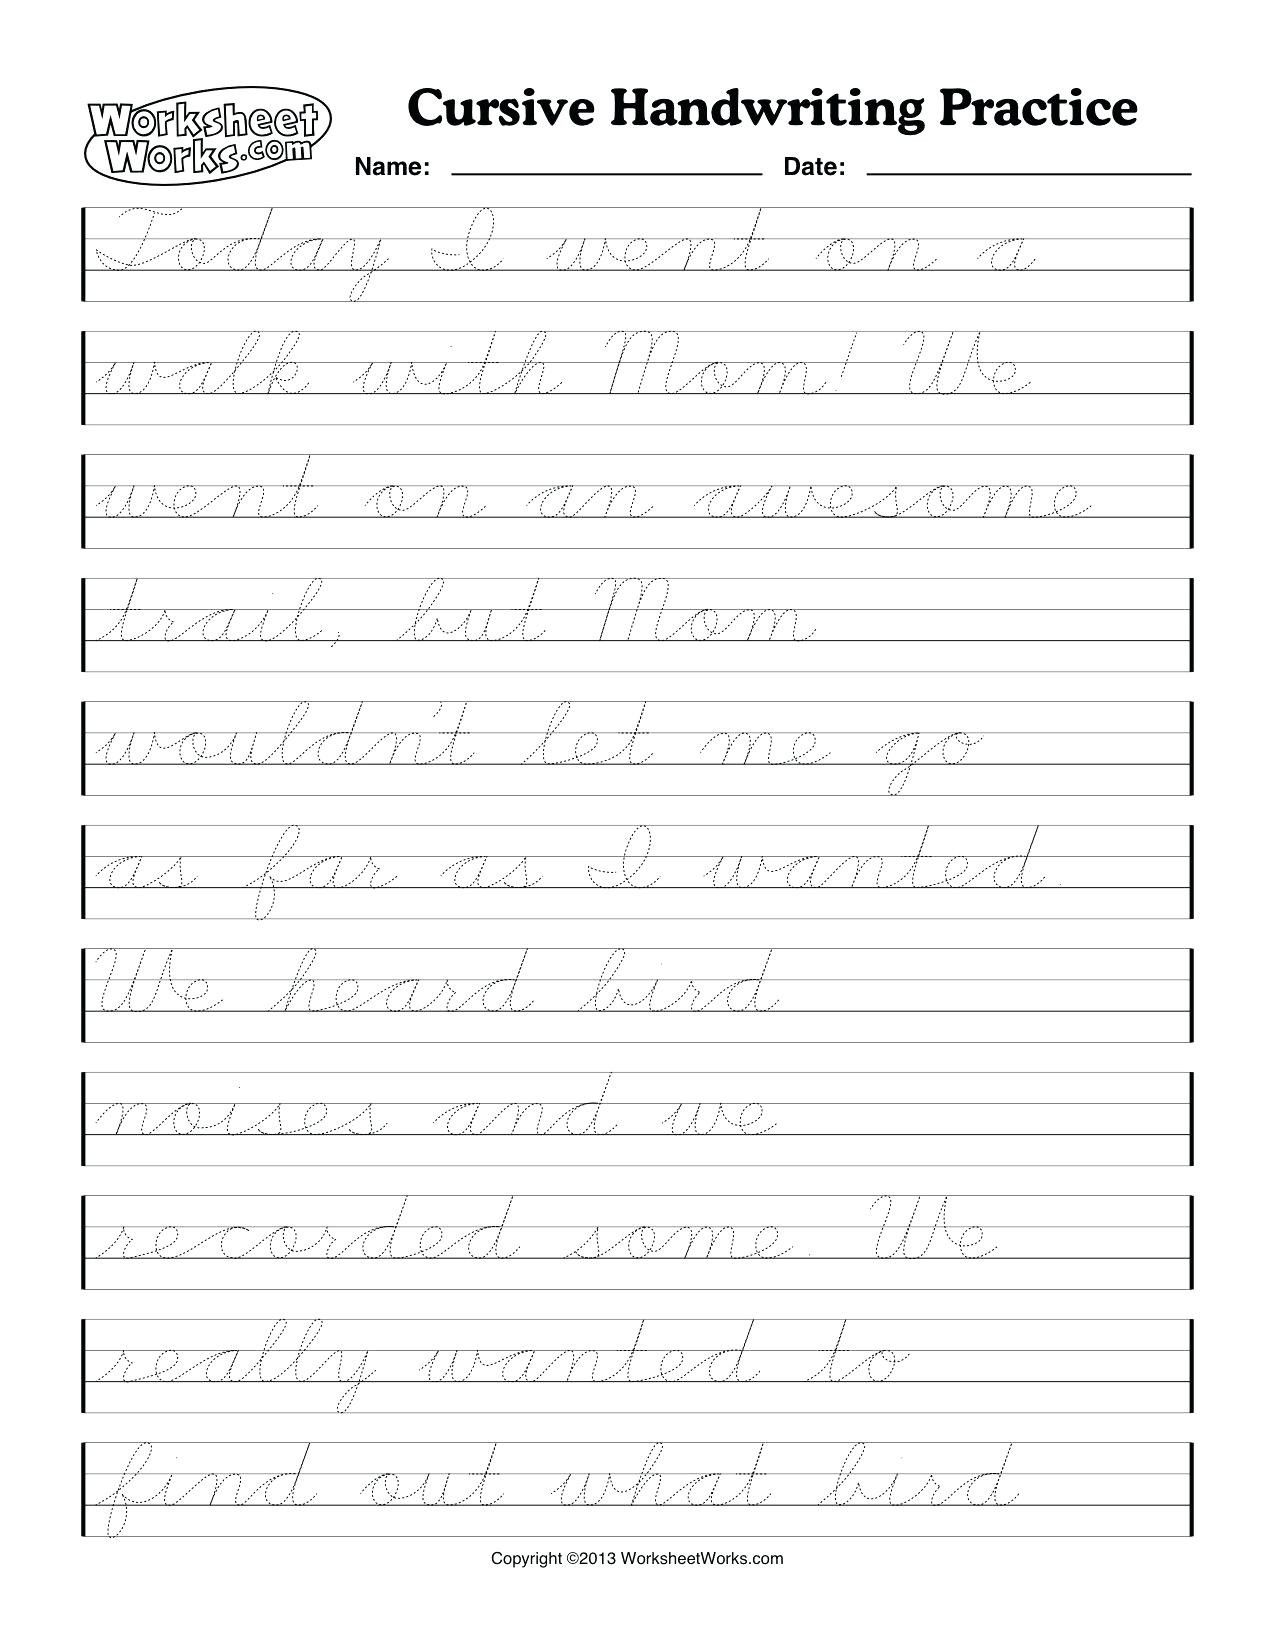 medium resolution of Printable Cursive Handwriting Practice Sheets